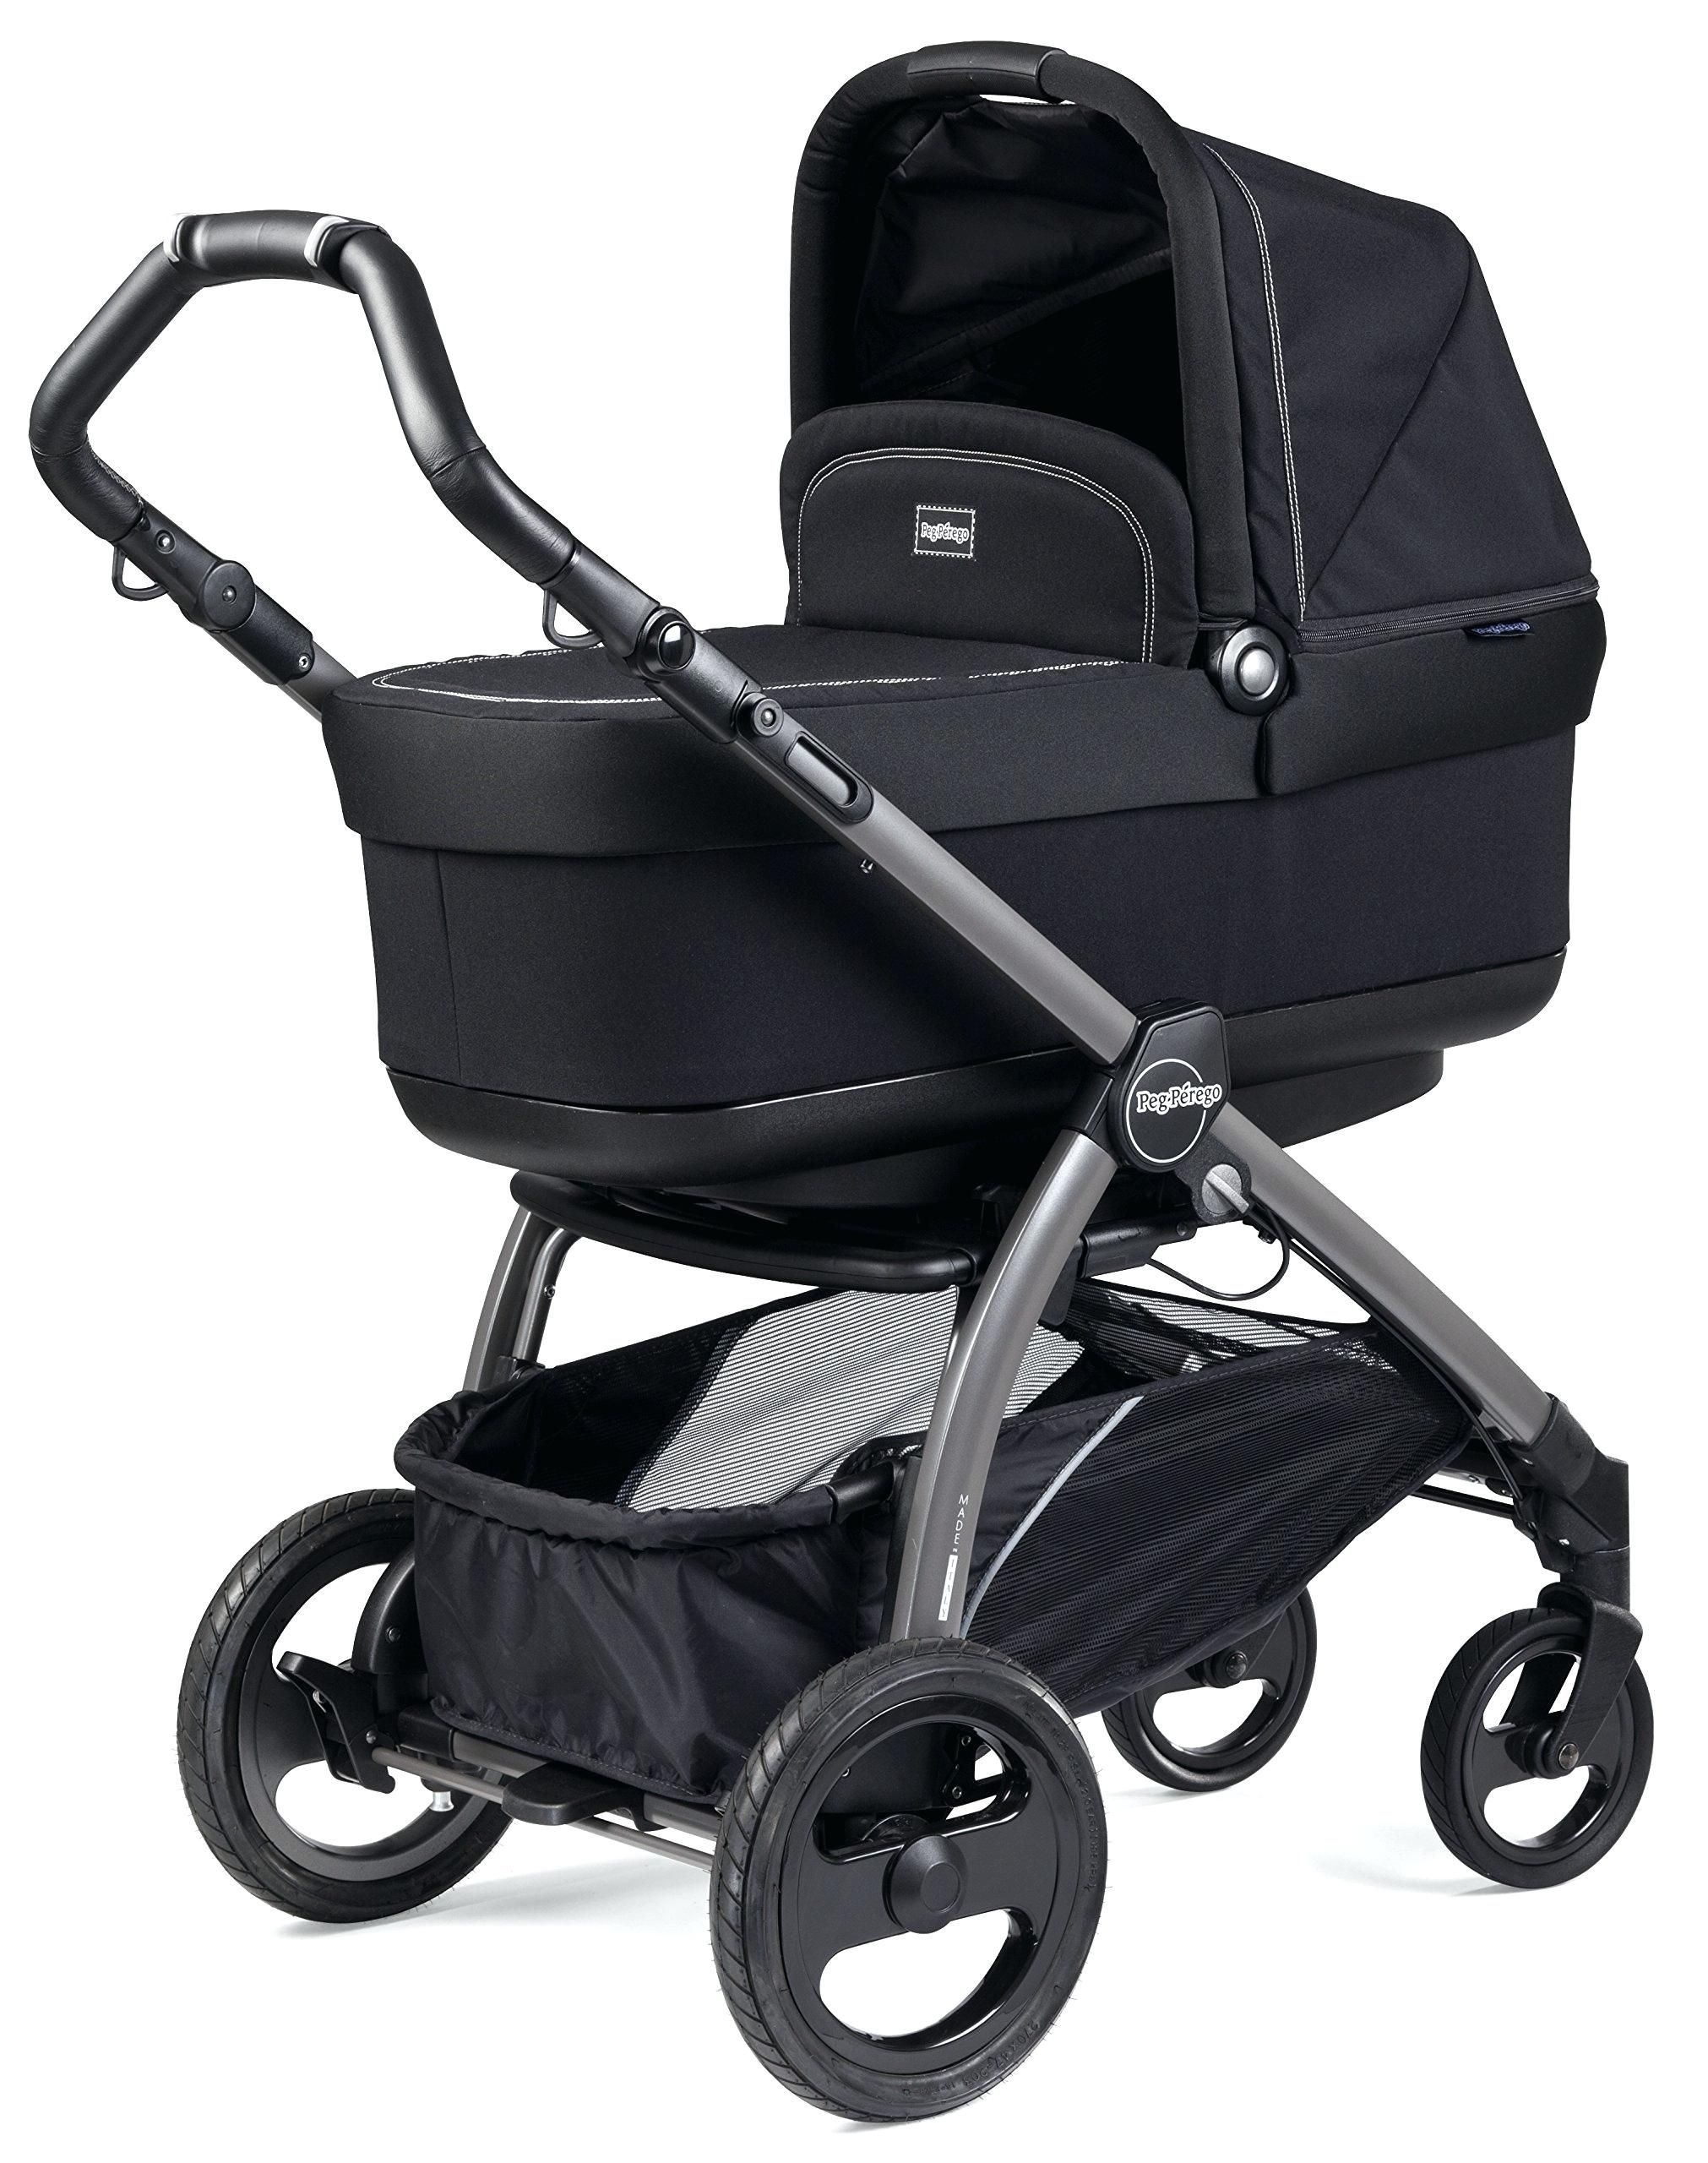 Komfort Buggy Book Von Peg Perego Cadillac Kinderwagen Amazoncom Peg Perego Book Pop Up